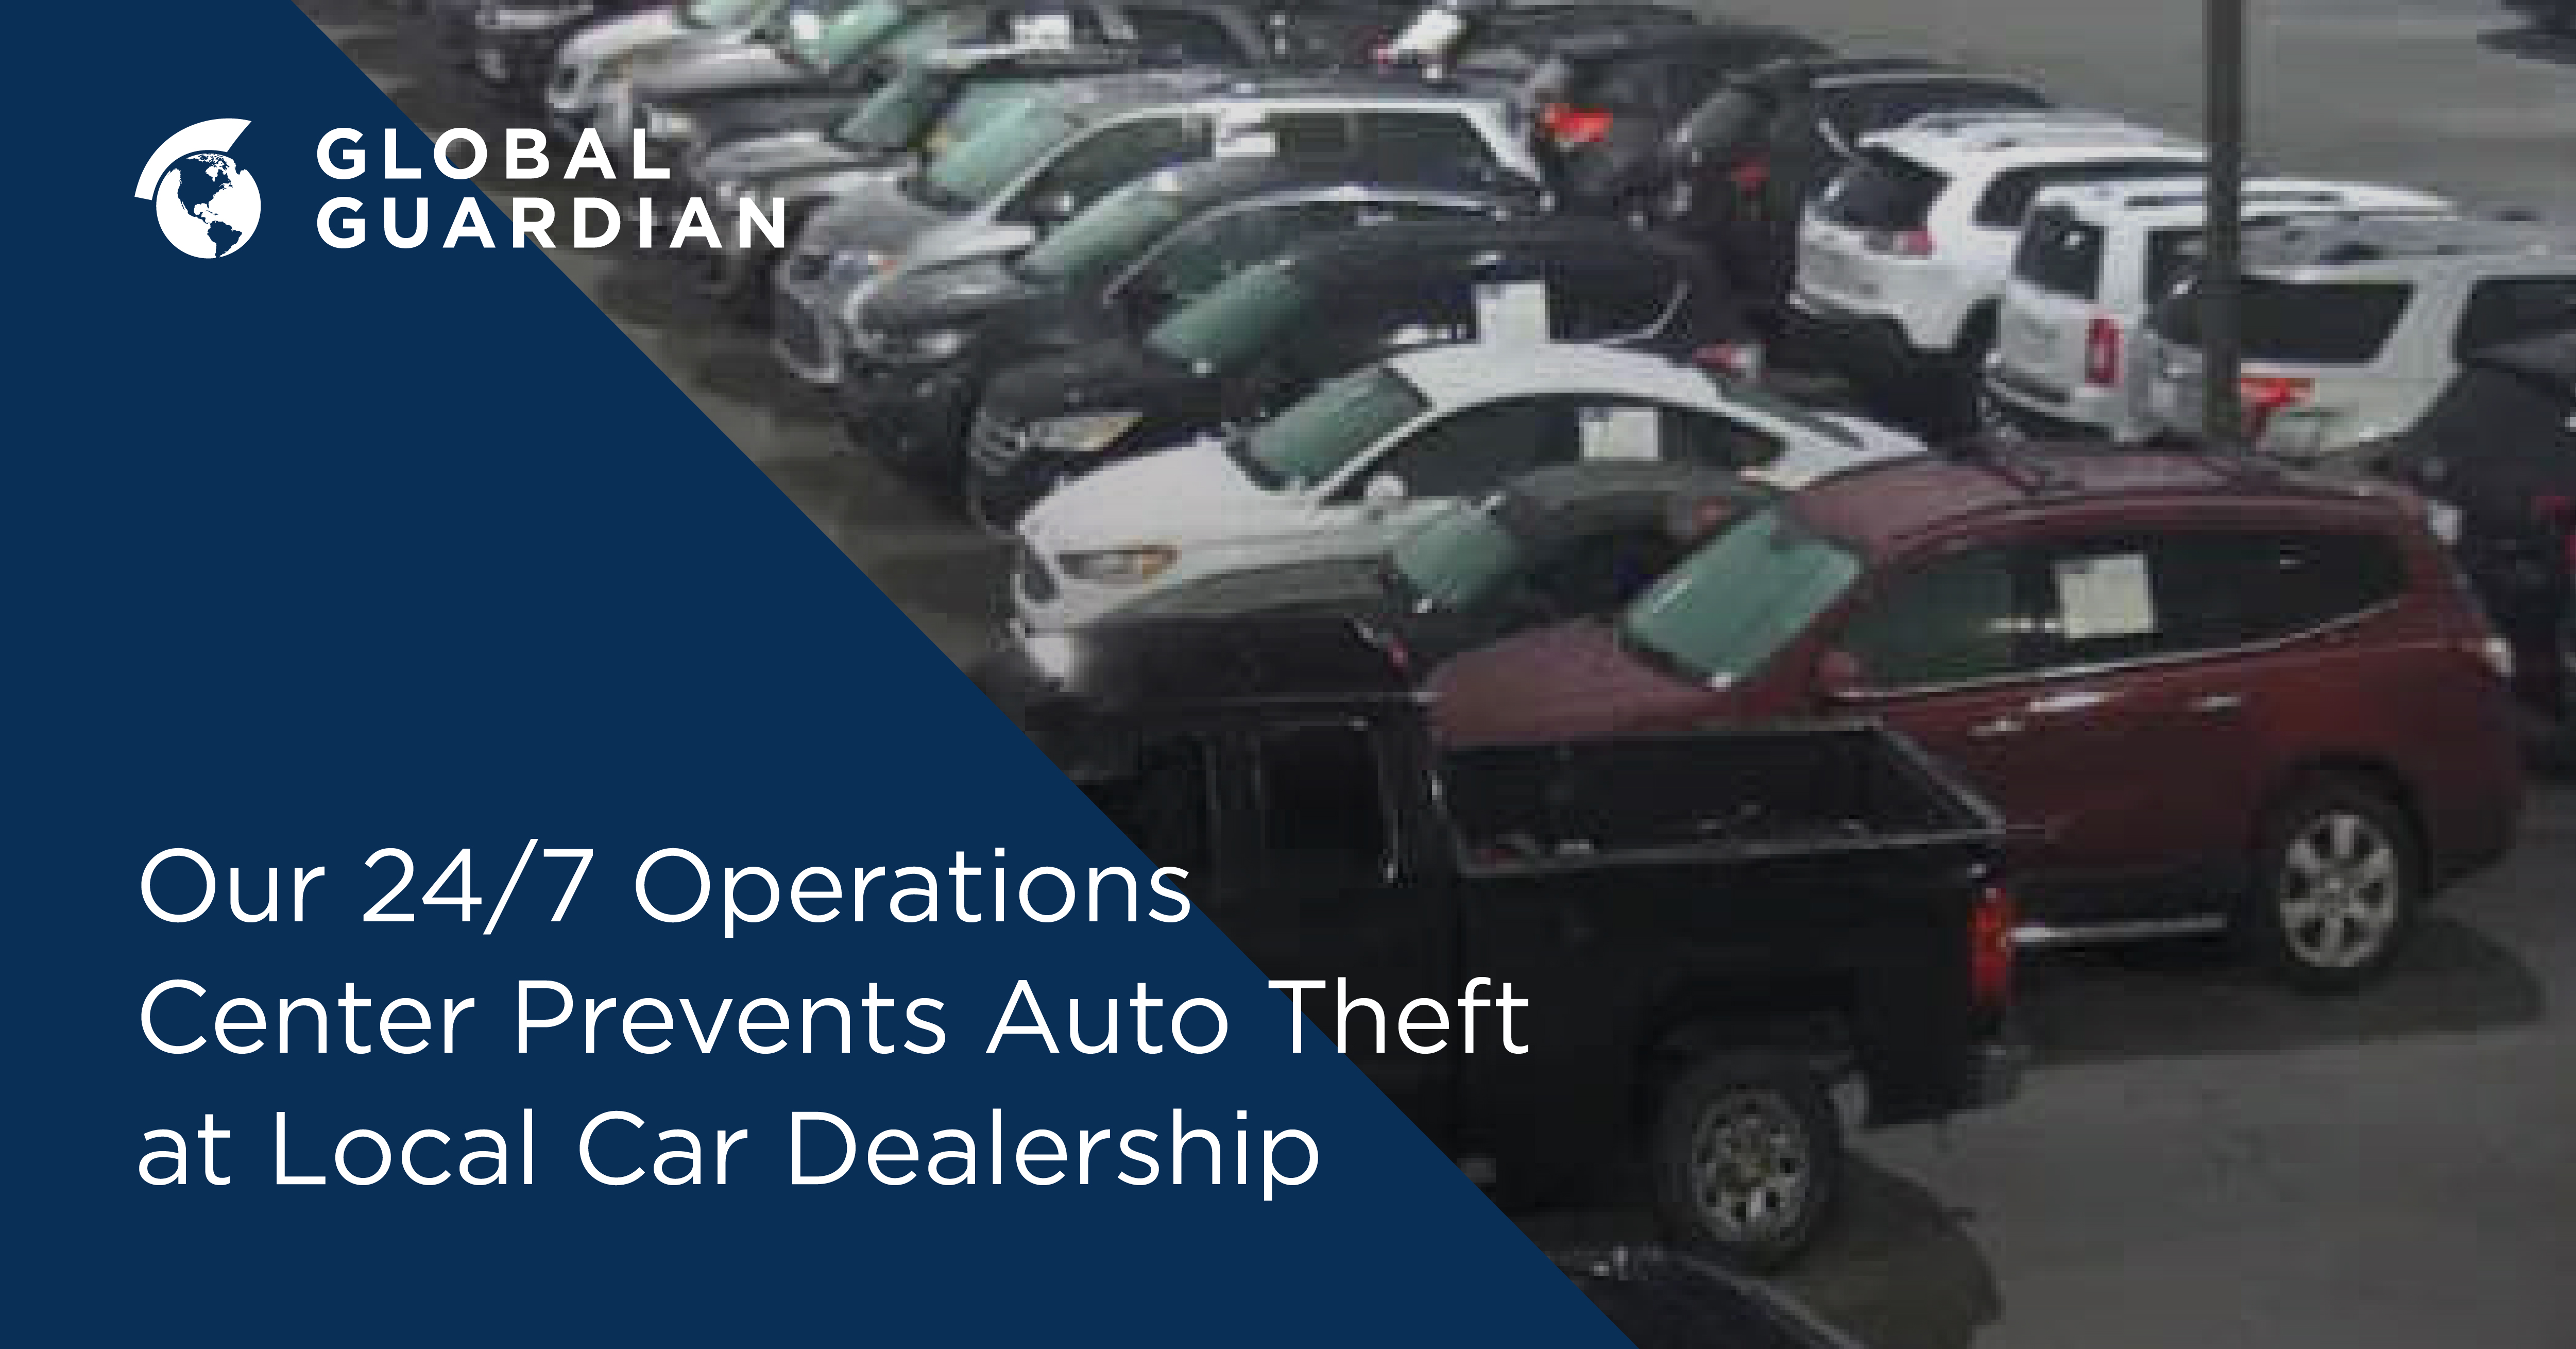 GLOBAL GUARDIAN PREVENTS AUTO THEFT AT A CAR DEALERSHIP